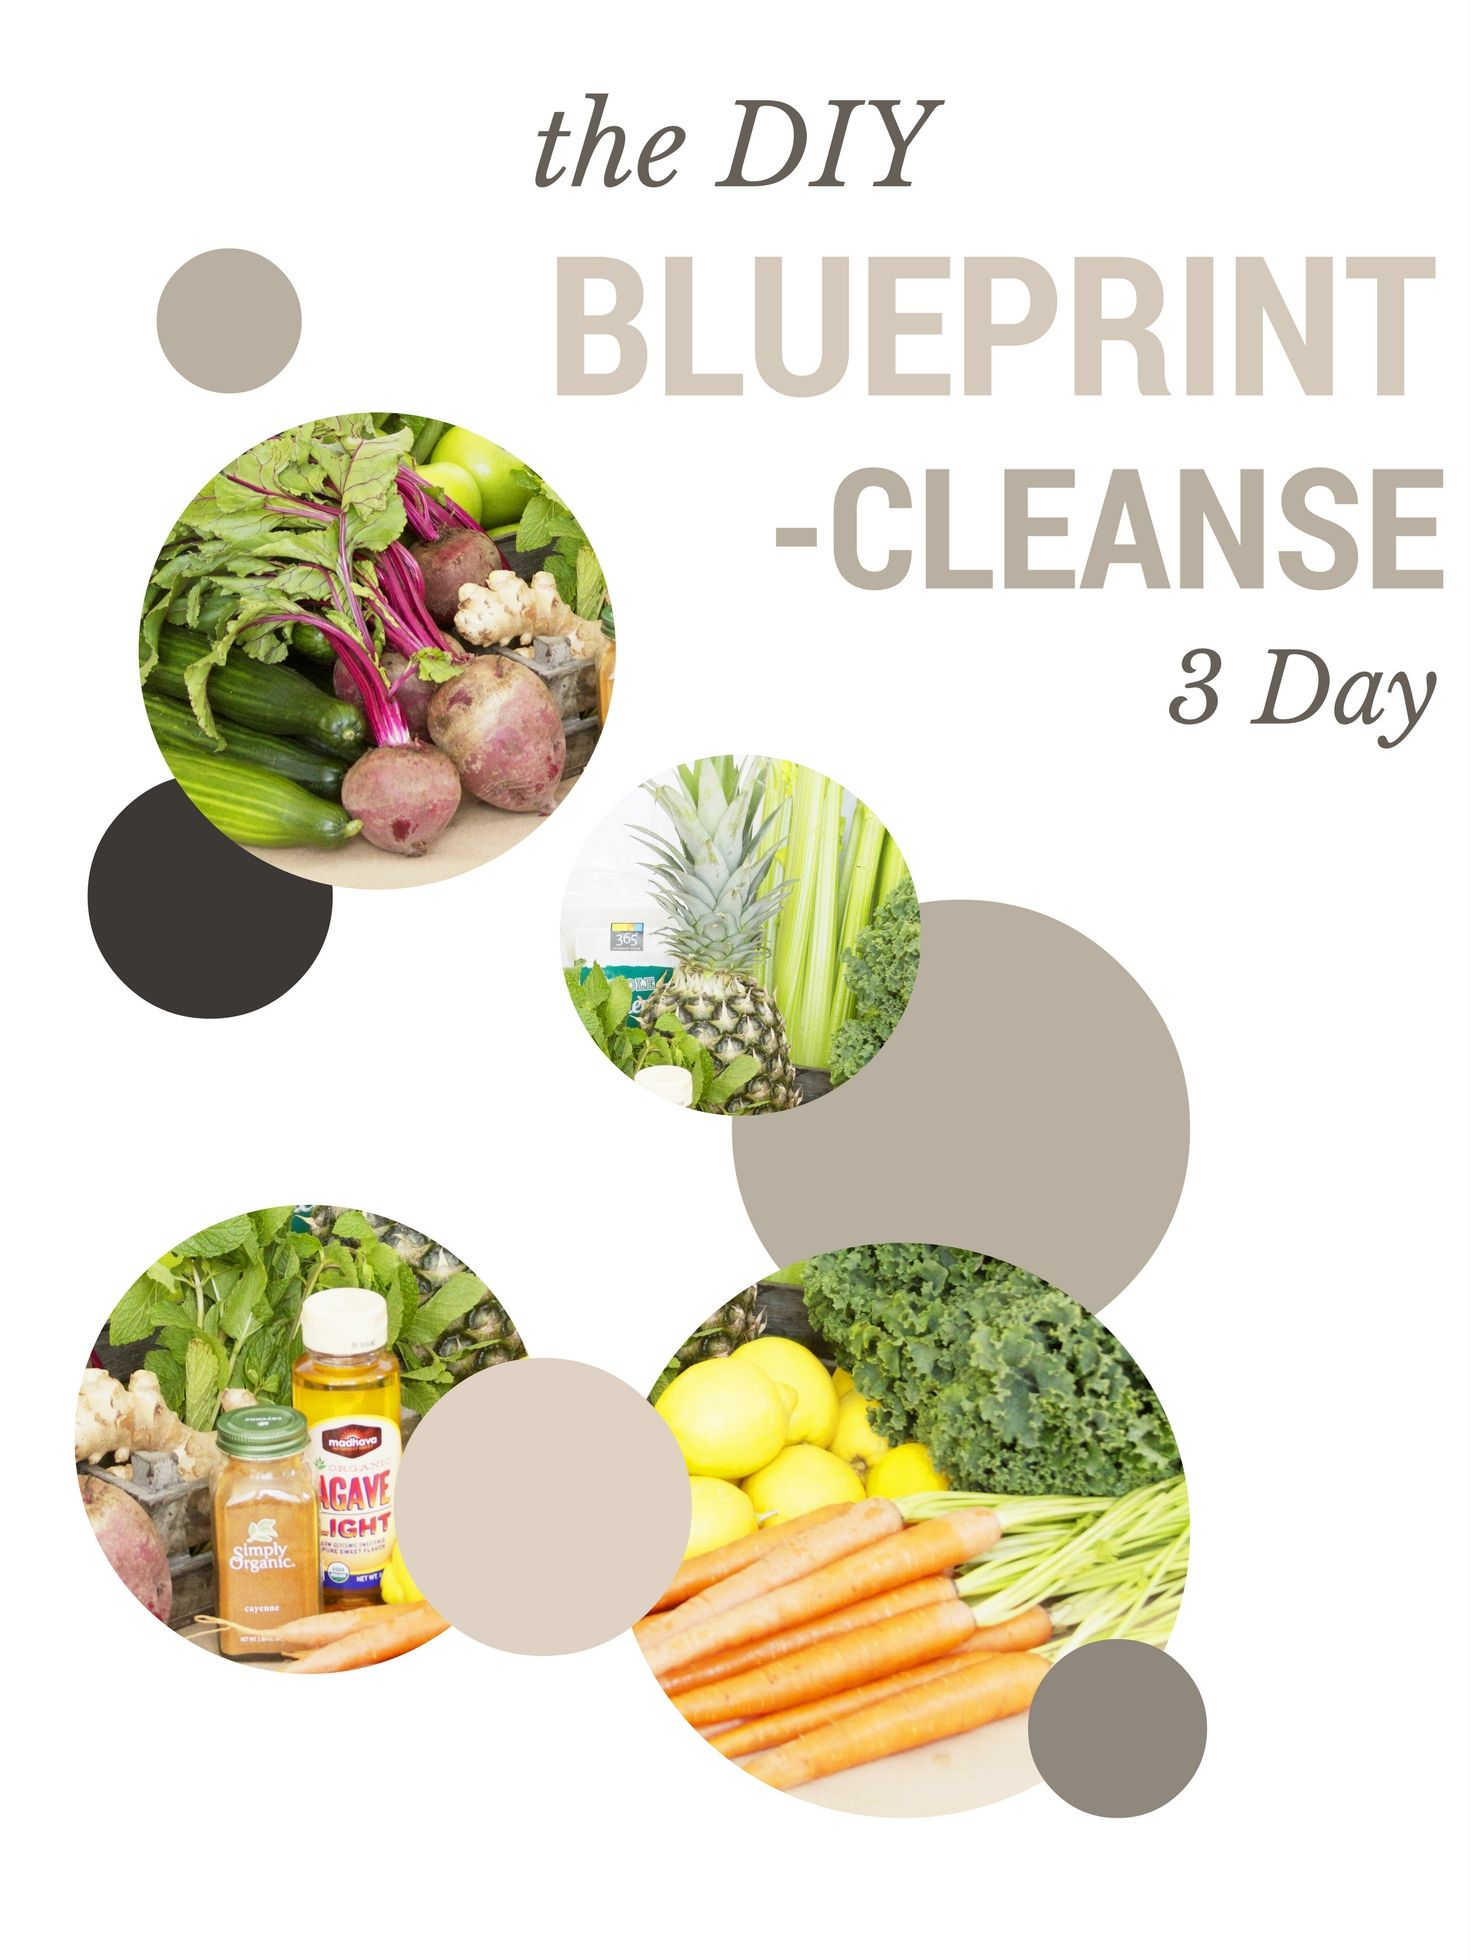 Diy blueprint cleanse blueprint cleanse cabbage soup diet and so i did a diy blueprint cleanse when it comes to rapid weight loss programs malvernweather Choice Image